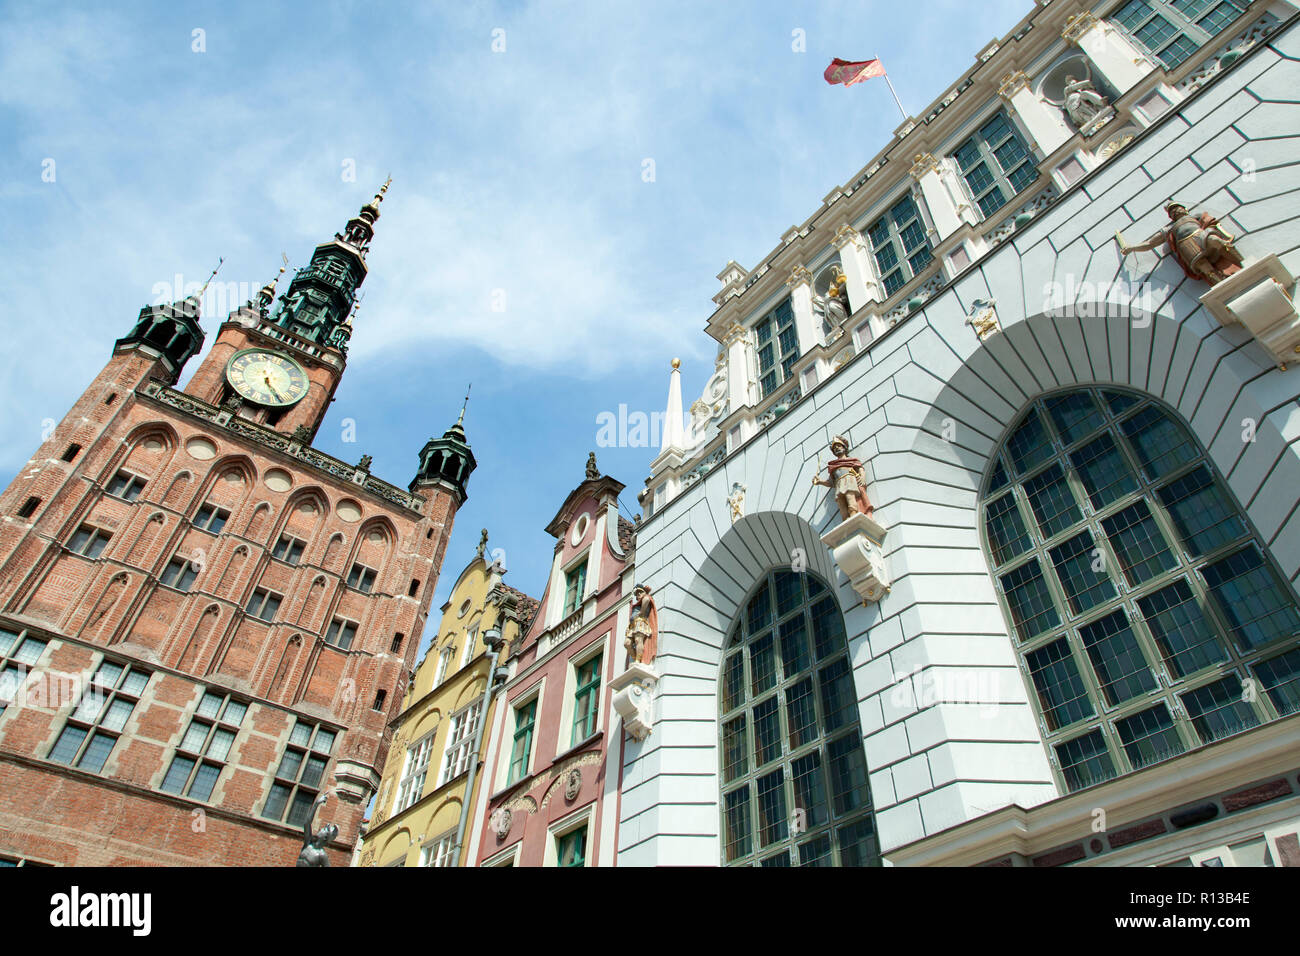 The view of historic town hall and restored 14th century Artus Court, merchant's meeting place in Gdansk old town (Poland). - Stock Image